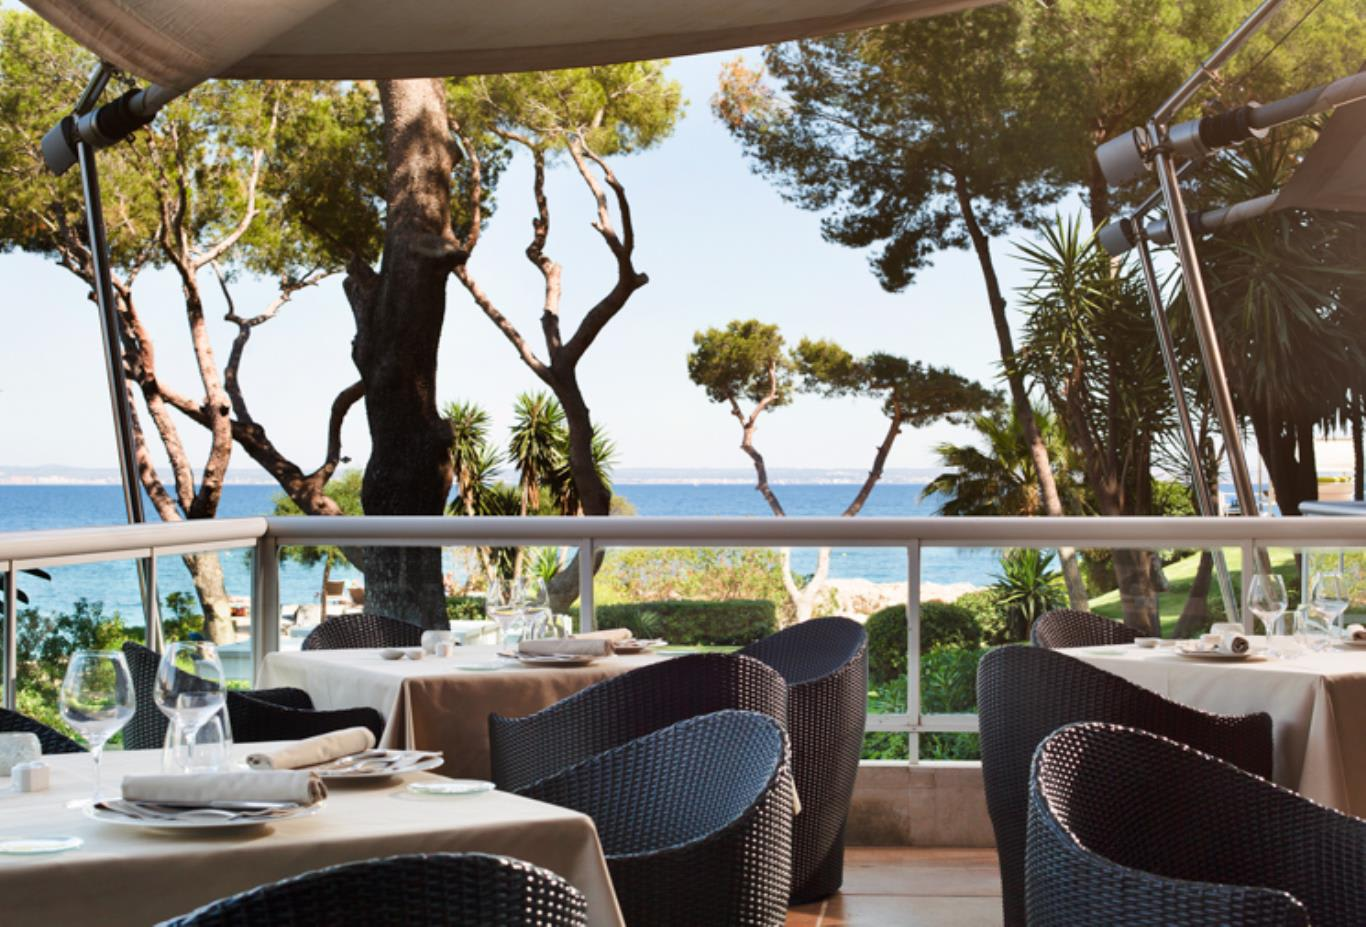 Pereso Restaurant terrace and sea views